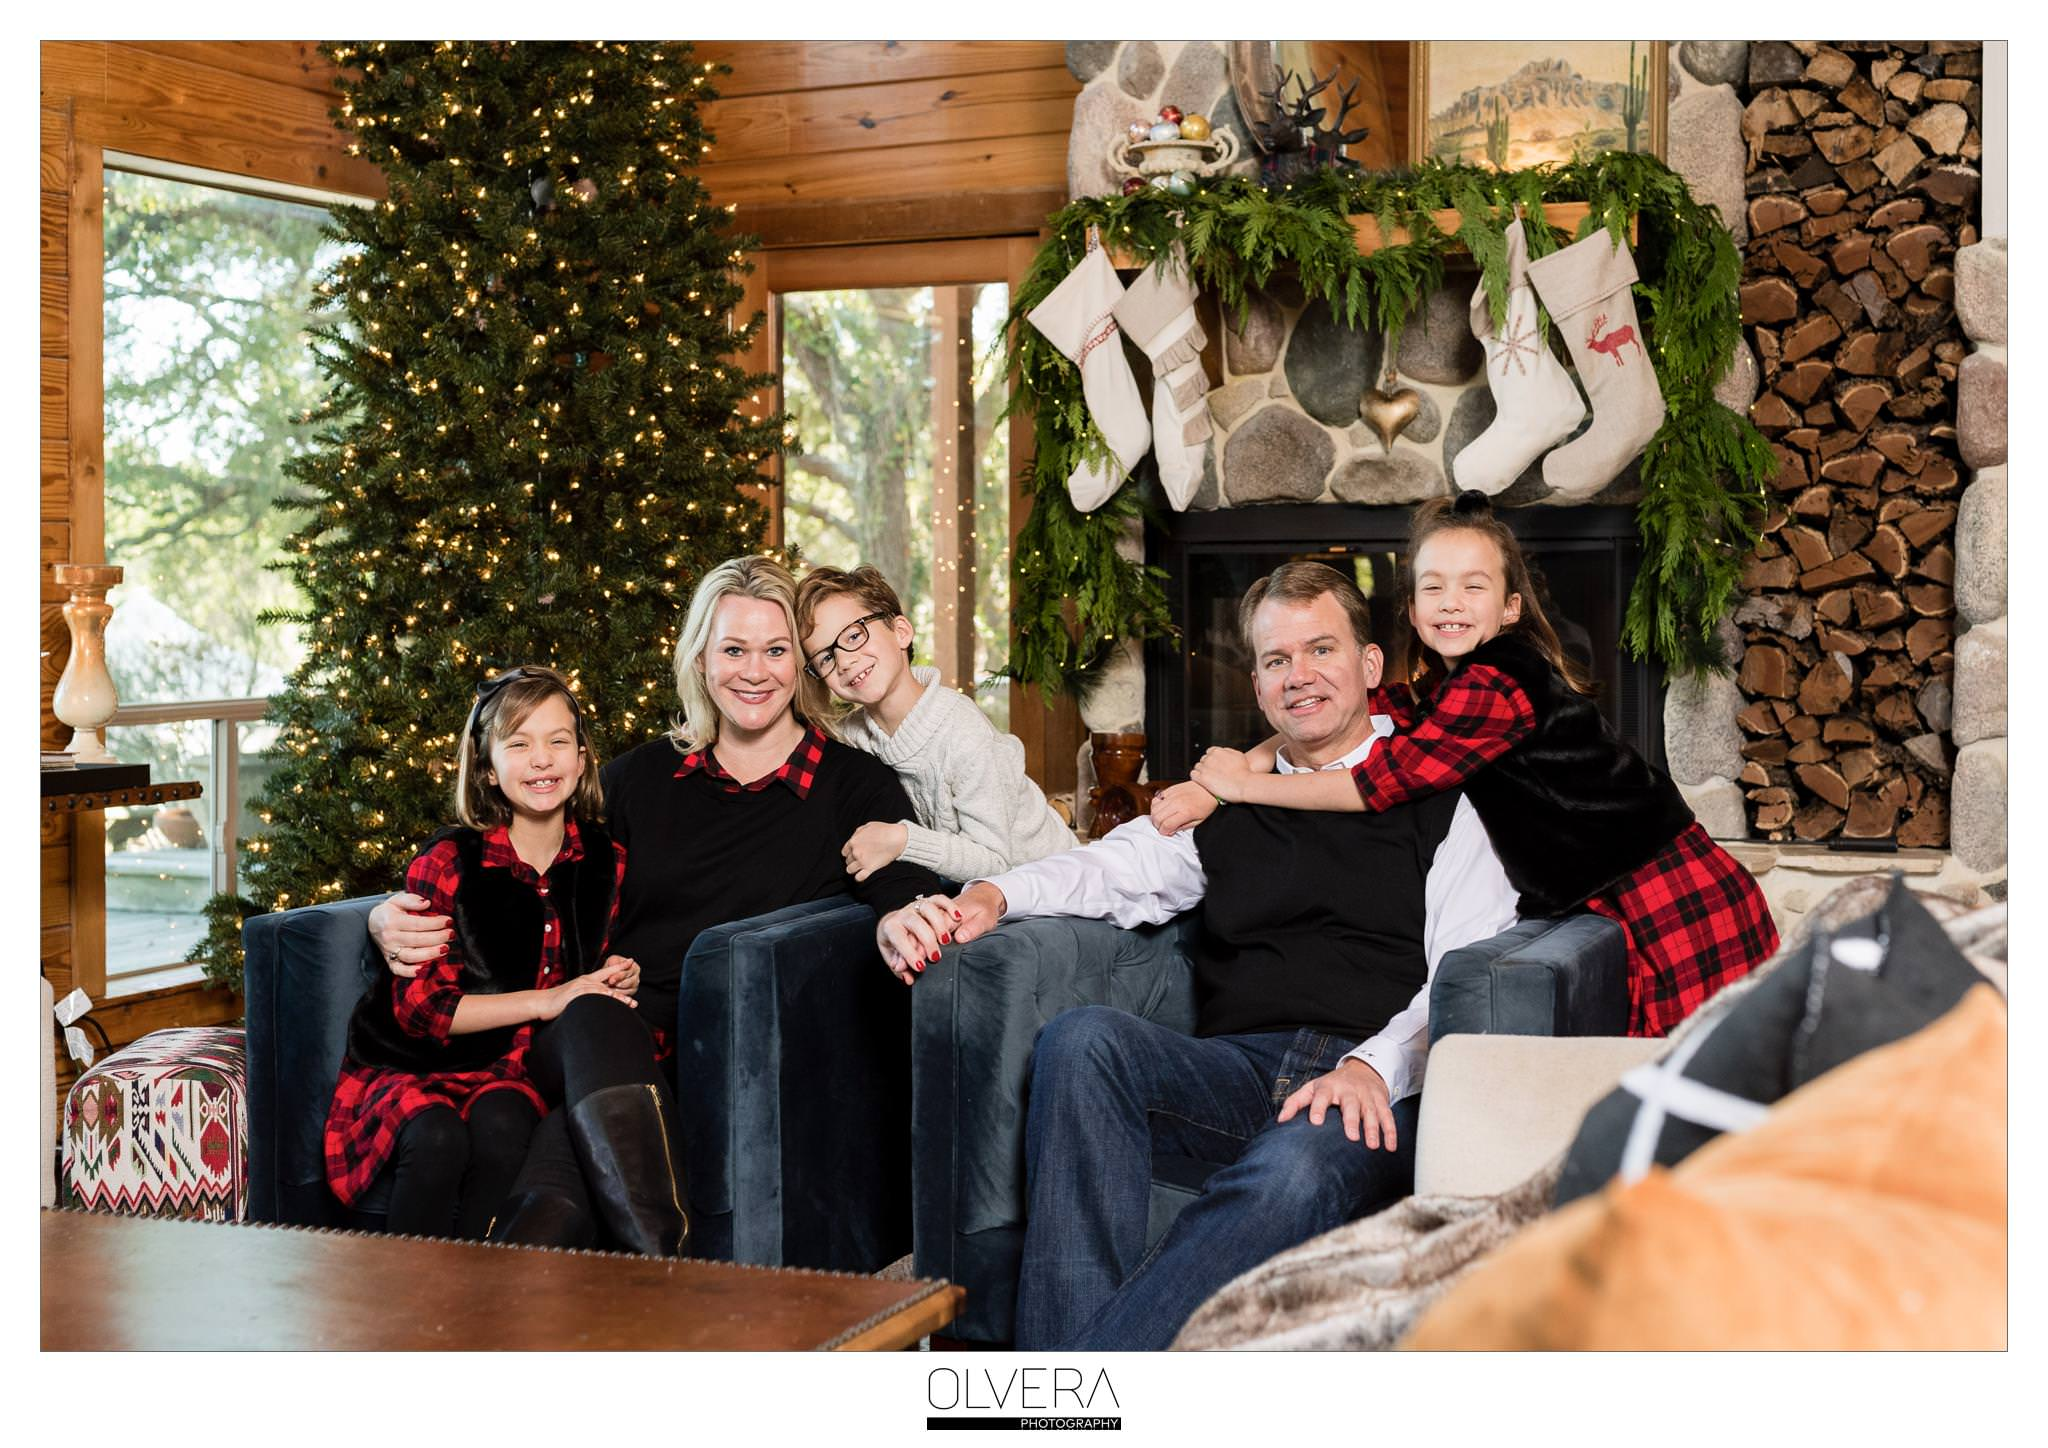 San-Antonio-Mini-Sessions_Christmas-Cabin-Tent_Olvera-Photography-001